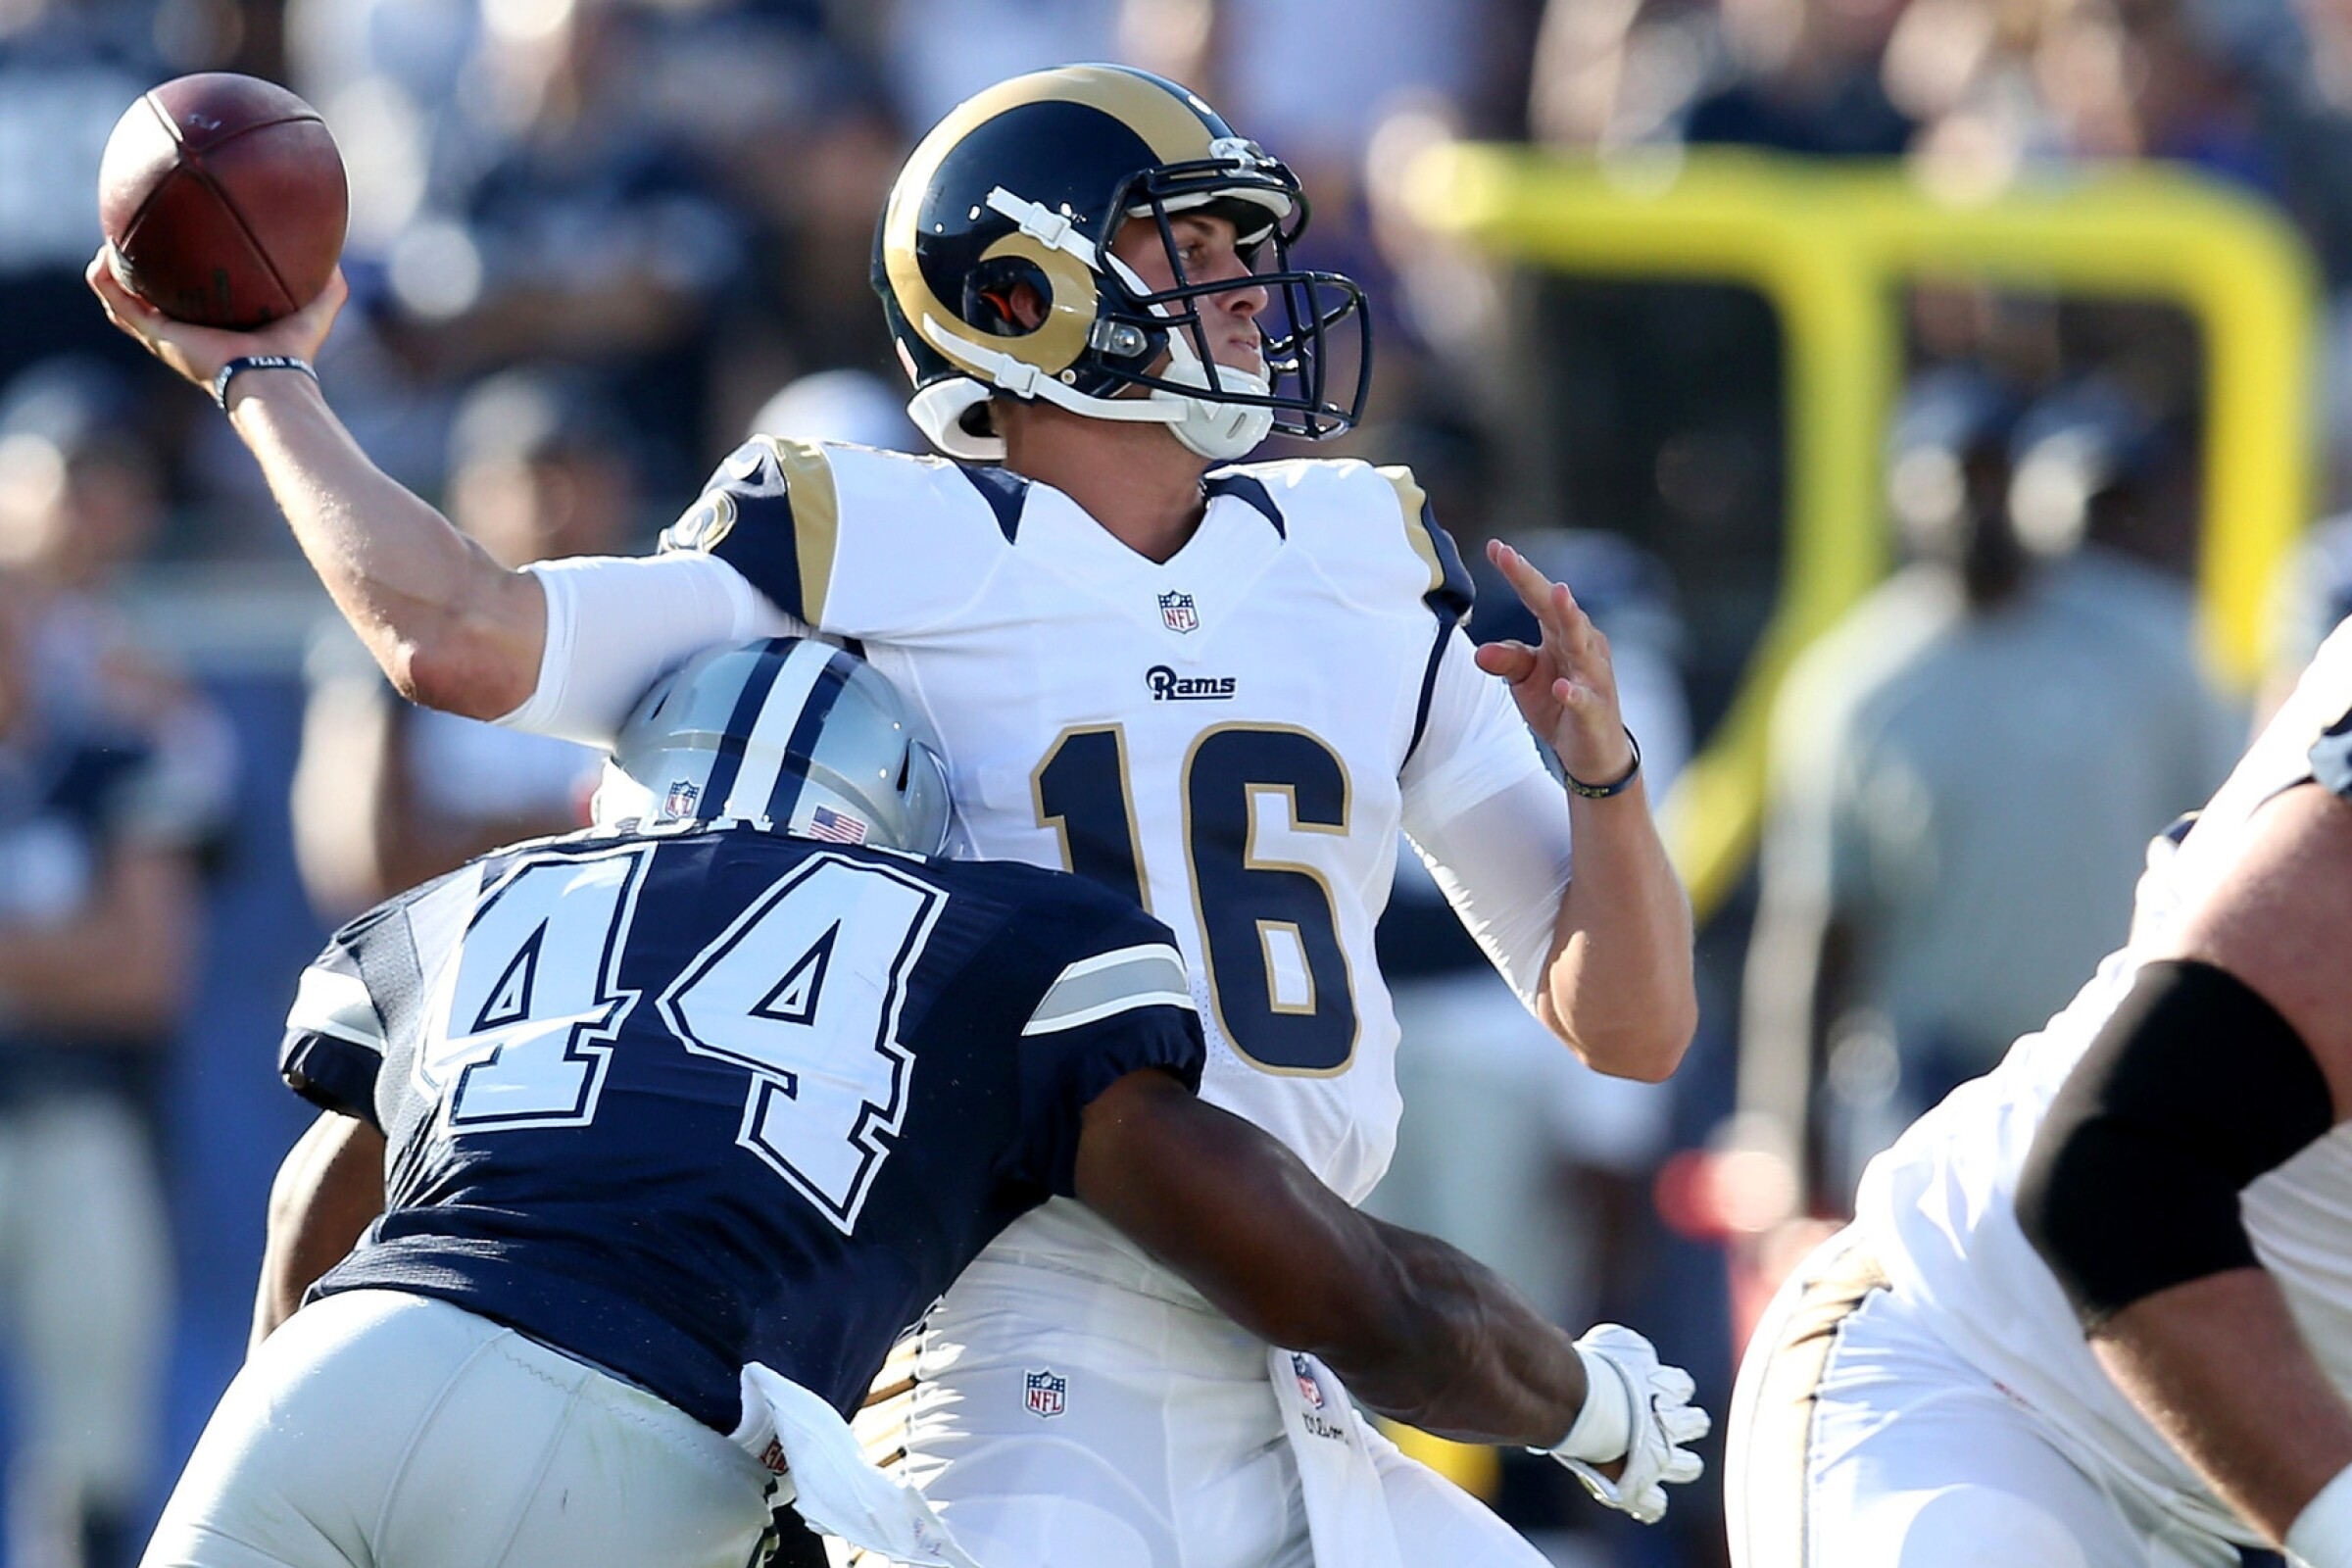 Jared Goff and the Rams play host to the Dallas Cowboys on Sept. 13.